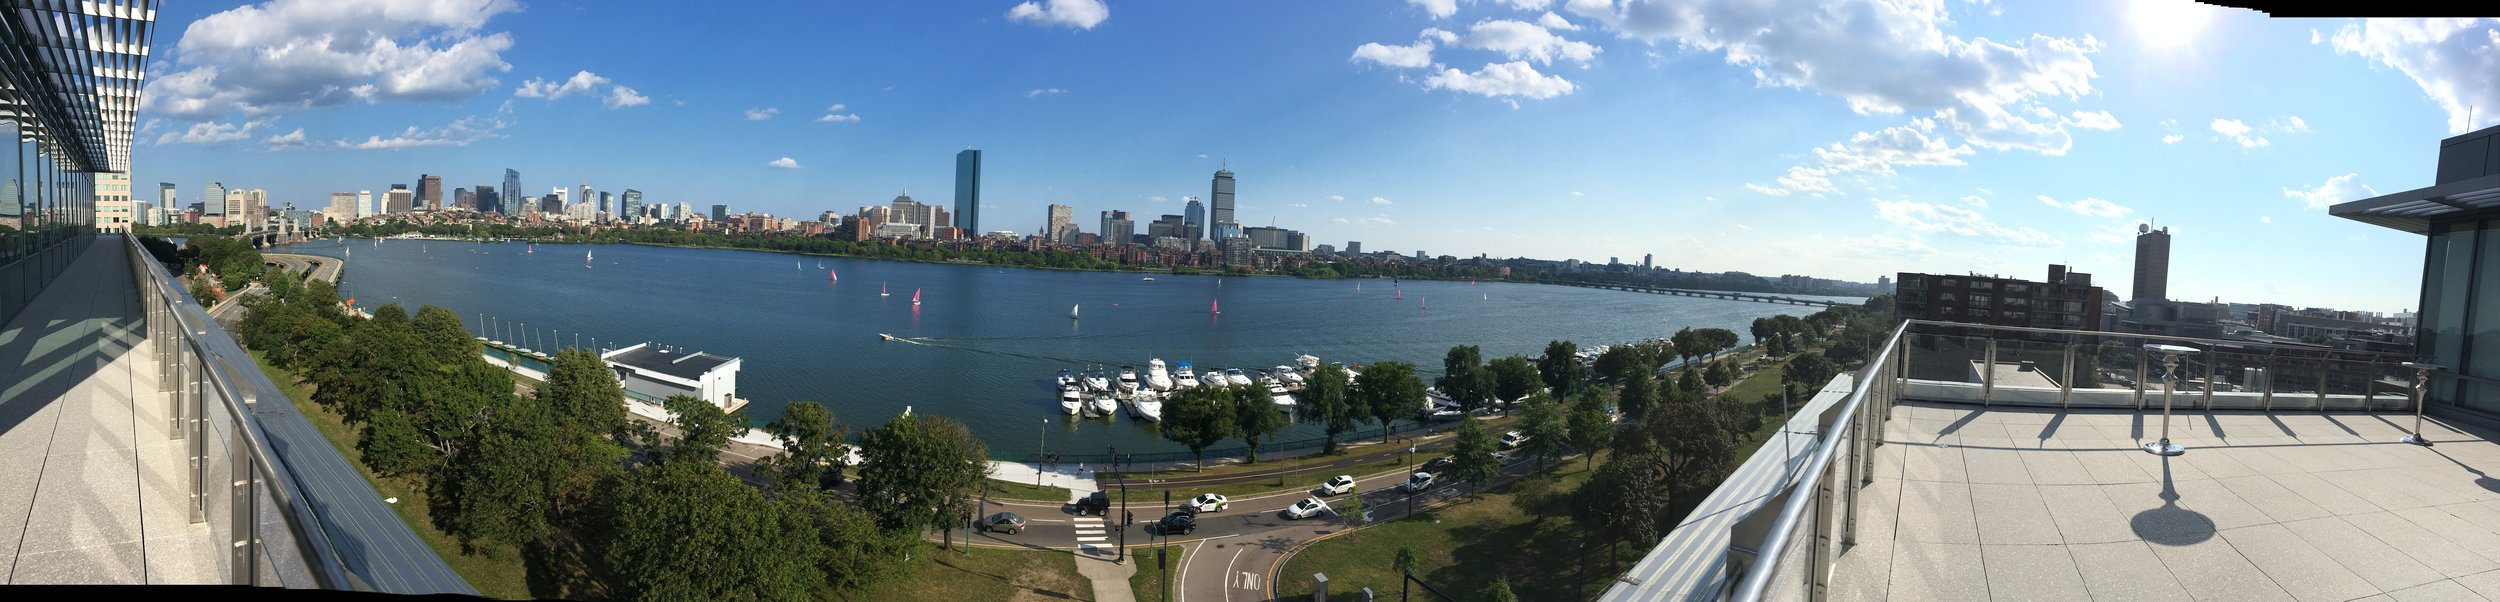 Held on the seventh floor of the MIT Sloan school, those attending enjoyed stunning views of the Boston skyline.